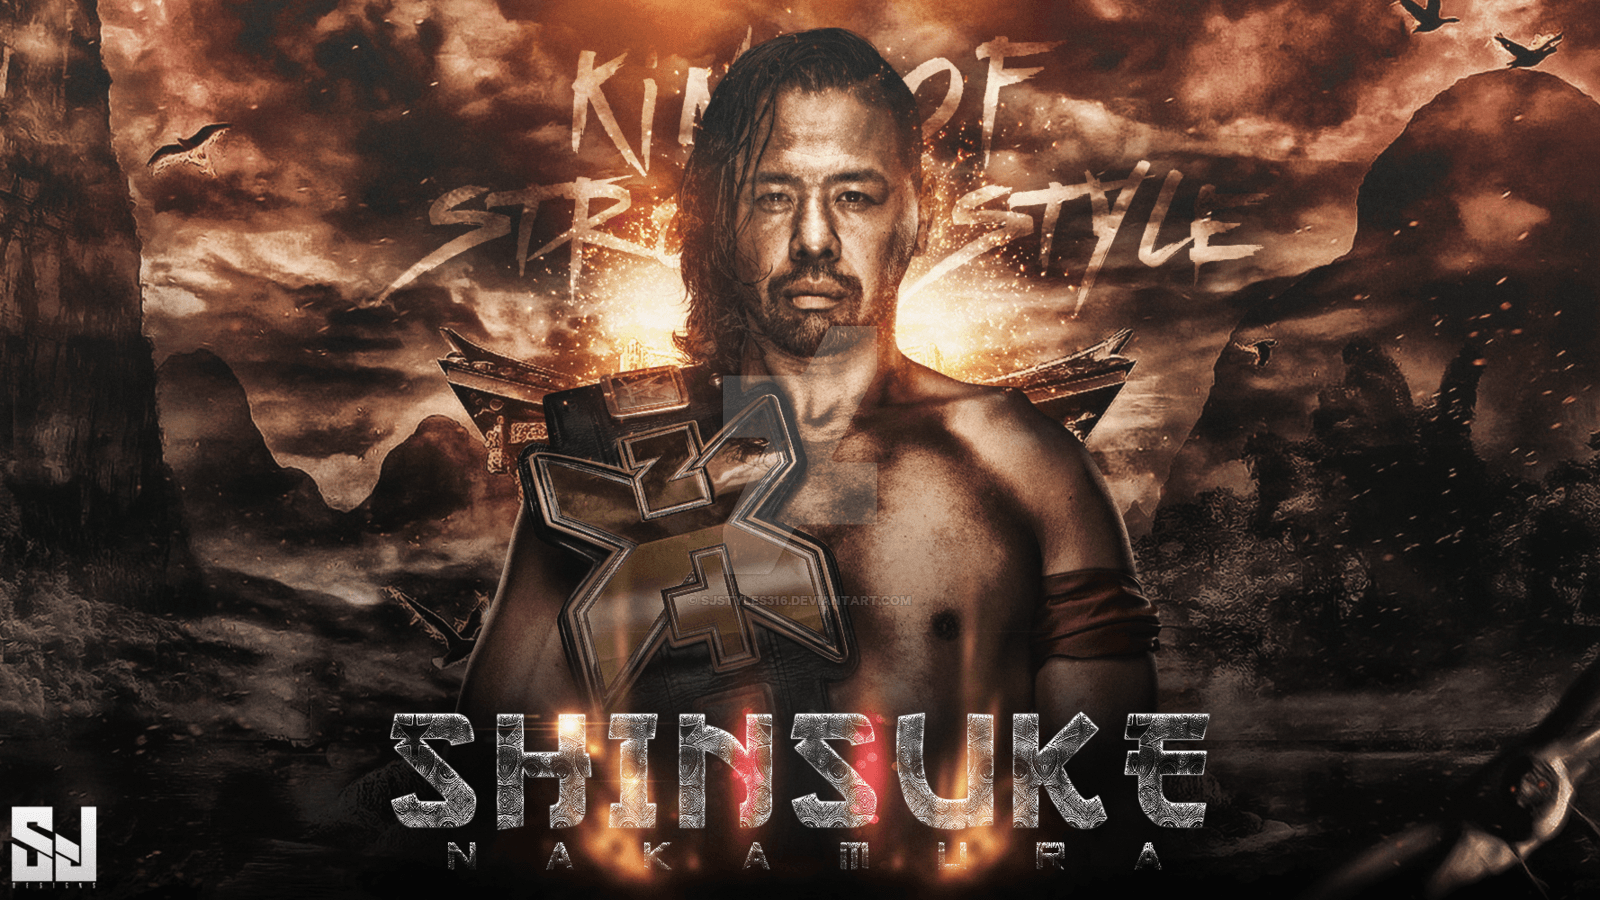 Shinsuke Nakamura Wallpapers By Sj by Sjstyles316